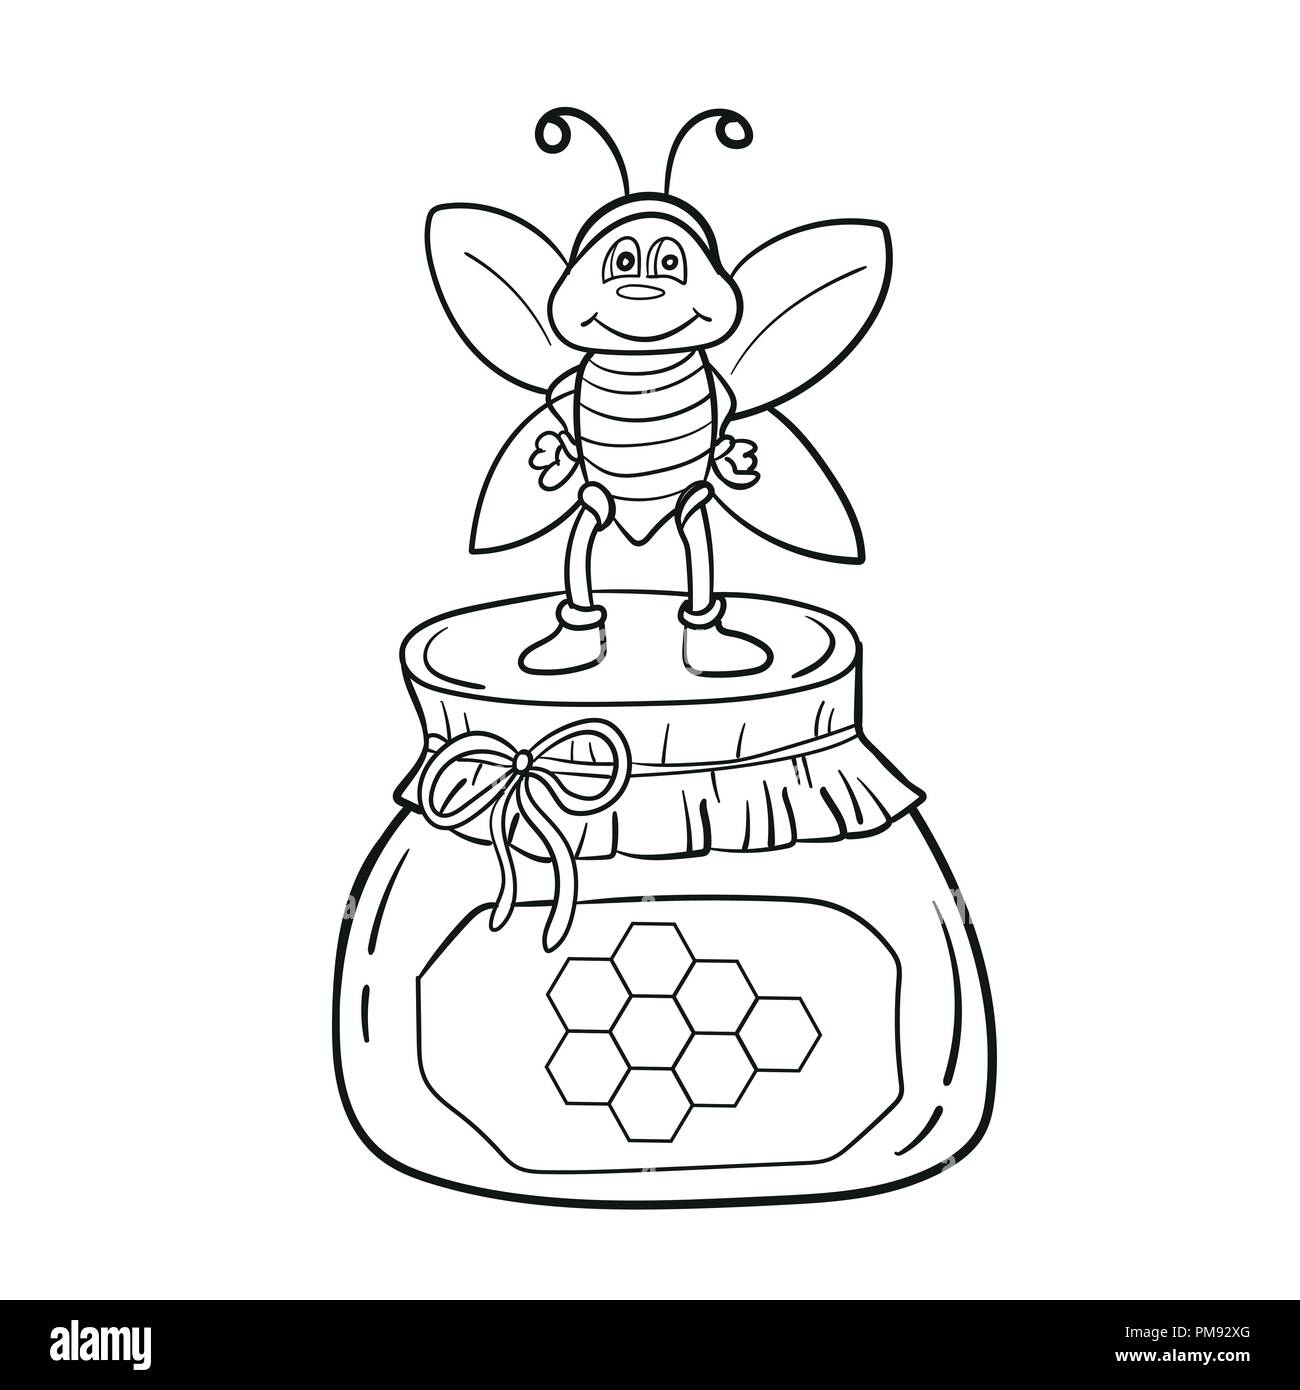 - Honey Bee Cartoon Coloring Book High Resolution Stock Photography